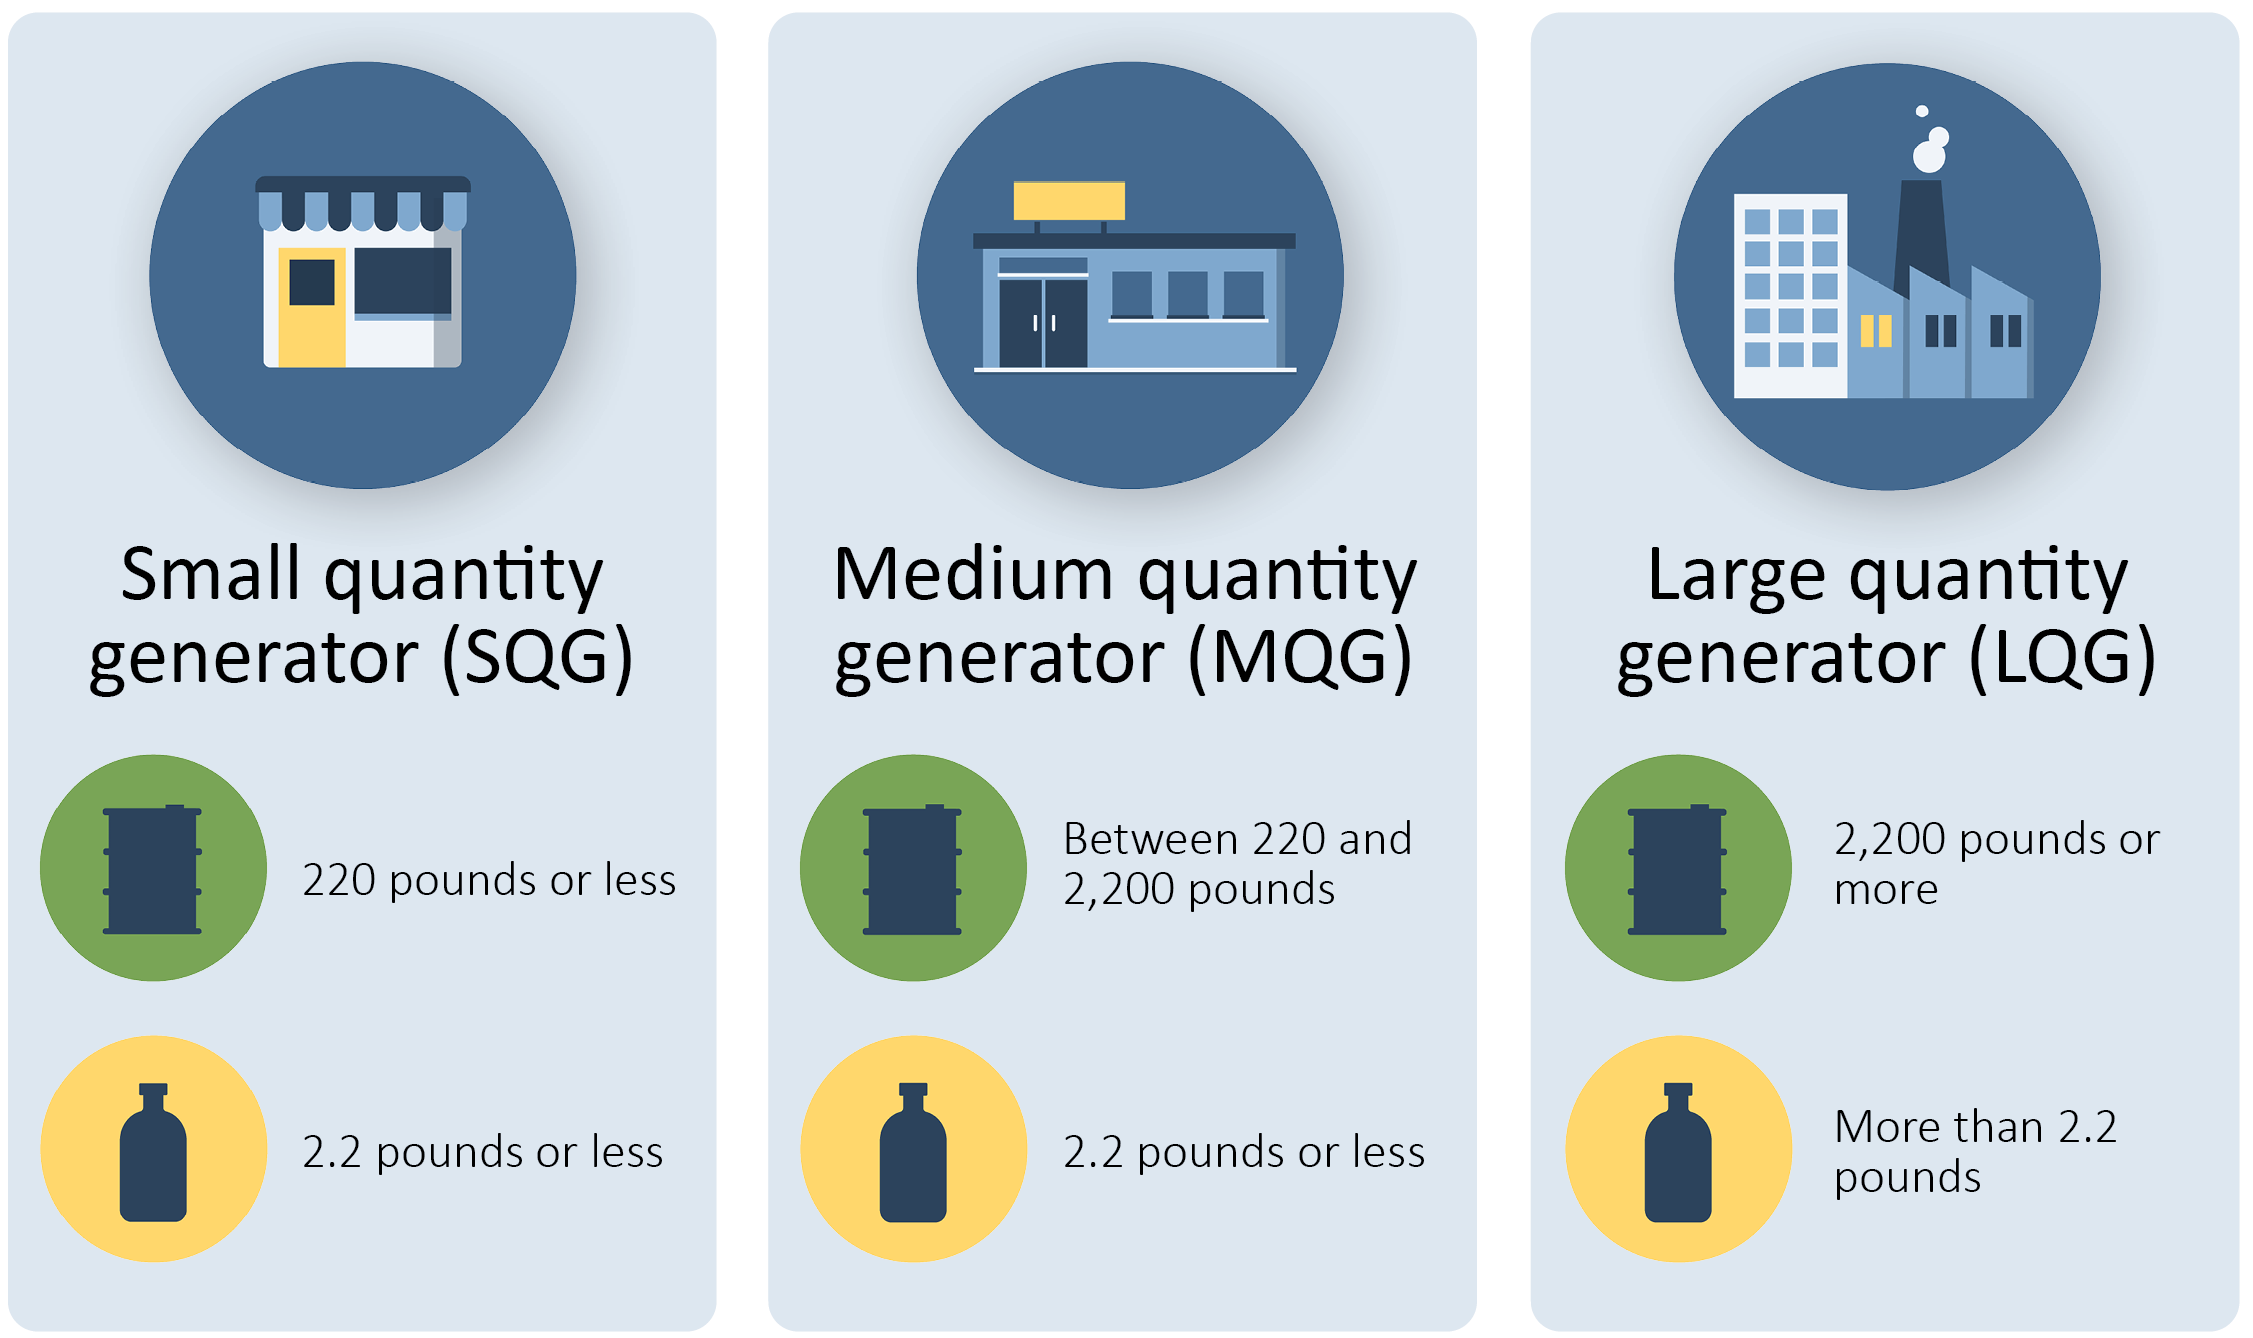 Waste generation limits for small, medium, and large quantity generators. These categories are determined by waste type and weight.